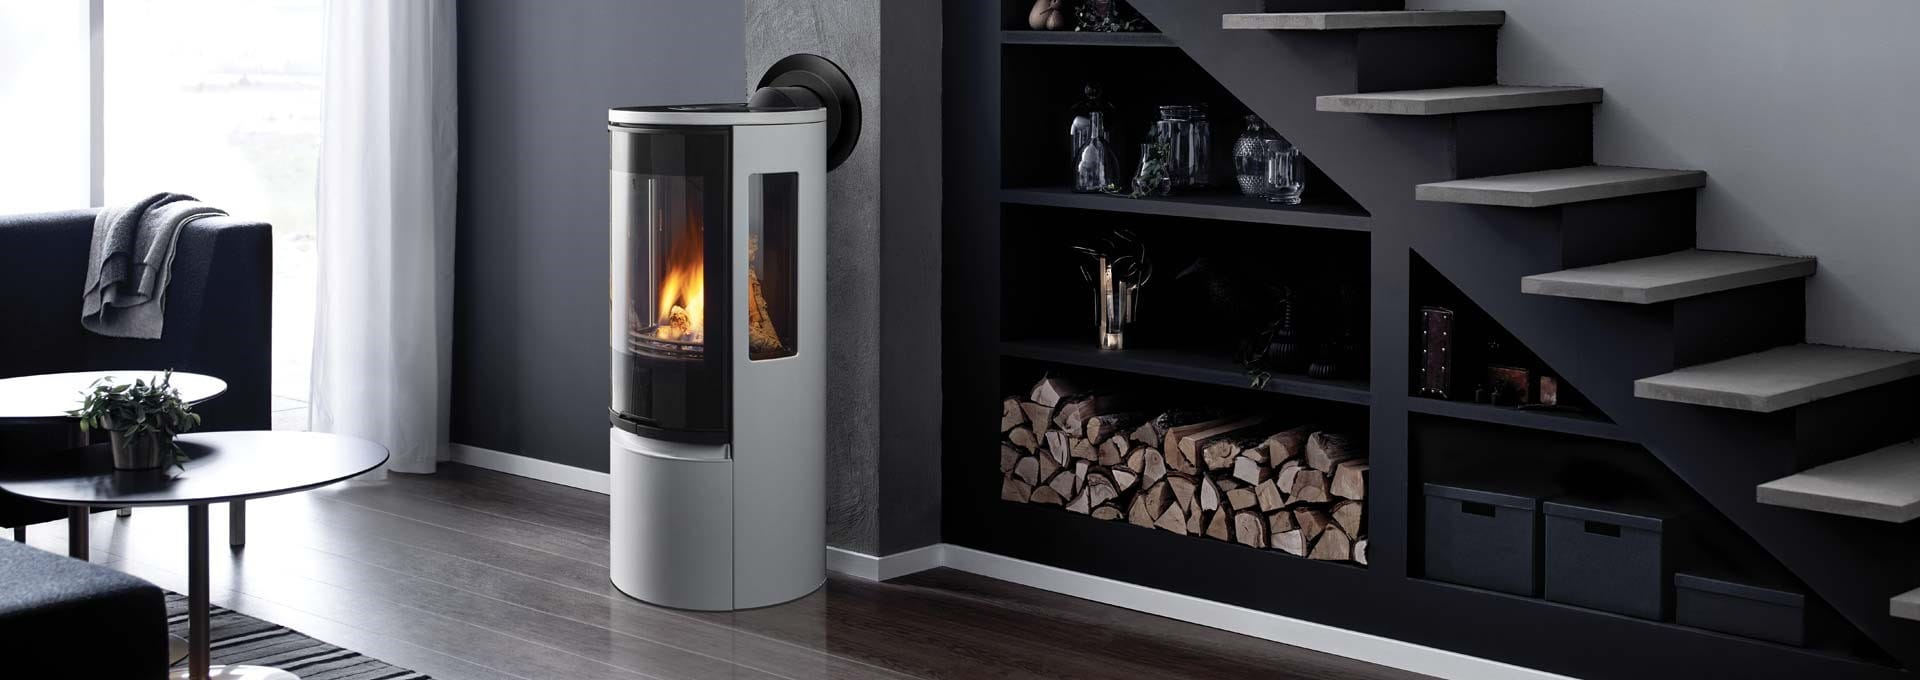 How To Decorate Around A Freestanding Stove 5 Ideas Fine Home Lamps